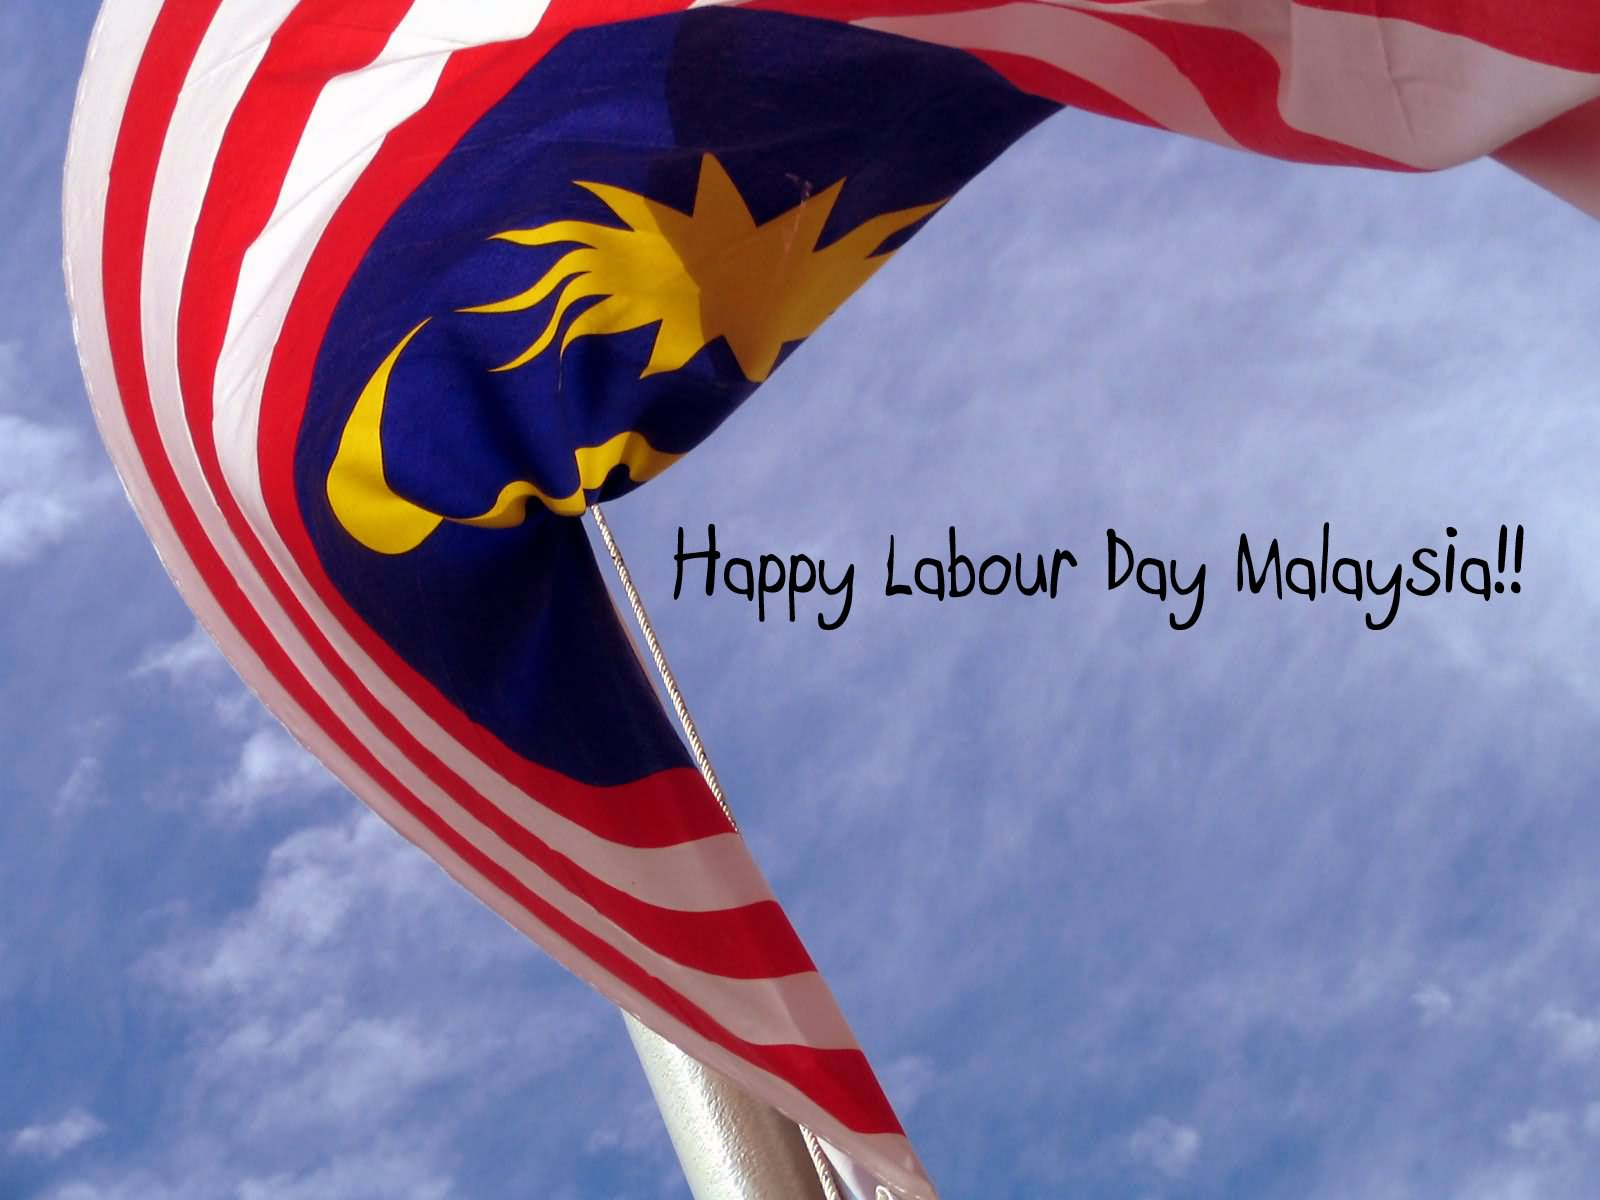 Happy Labour Day Malaysia